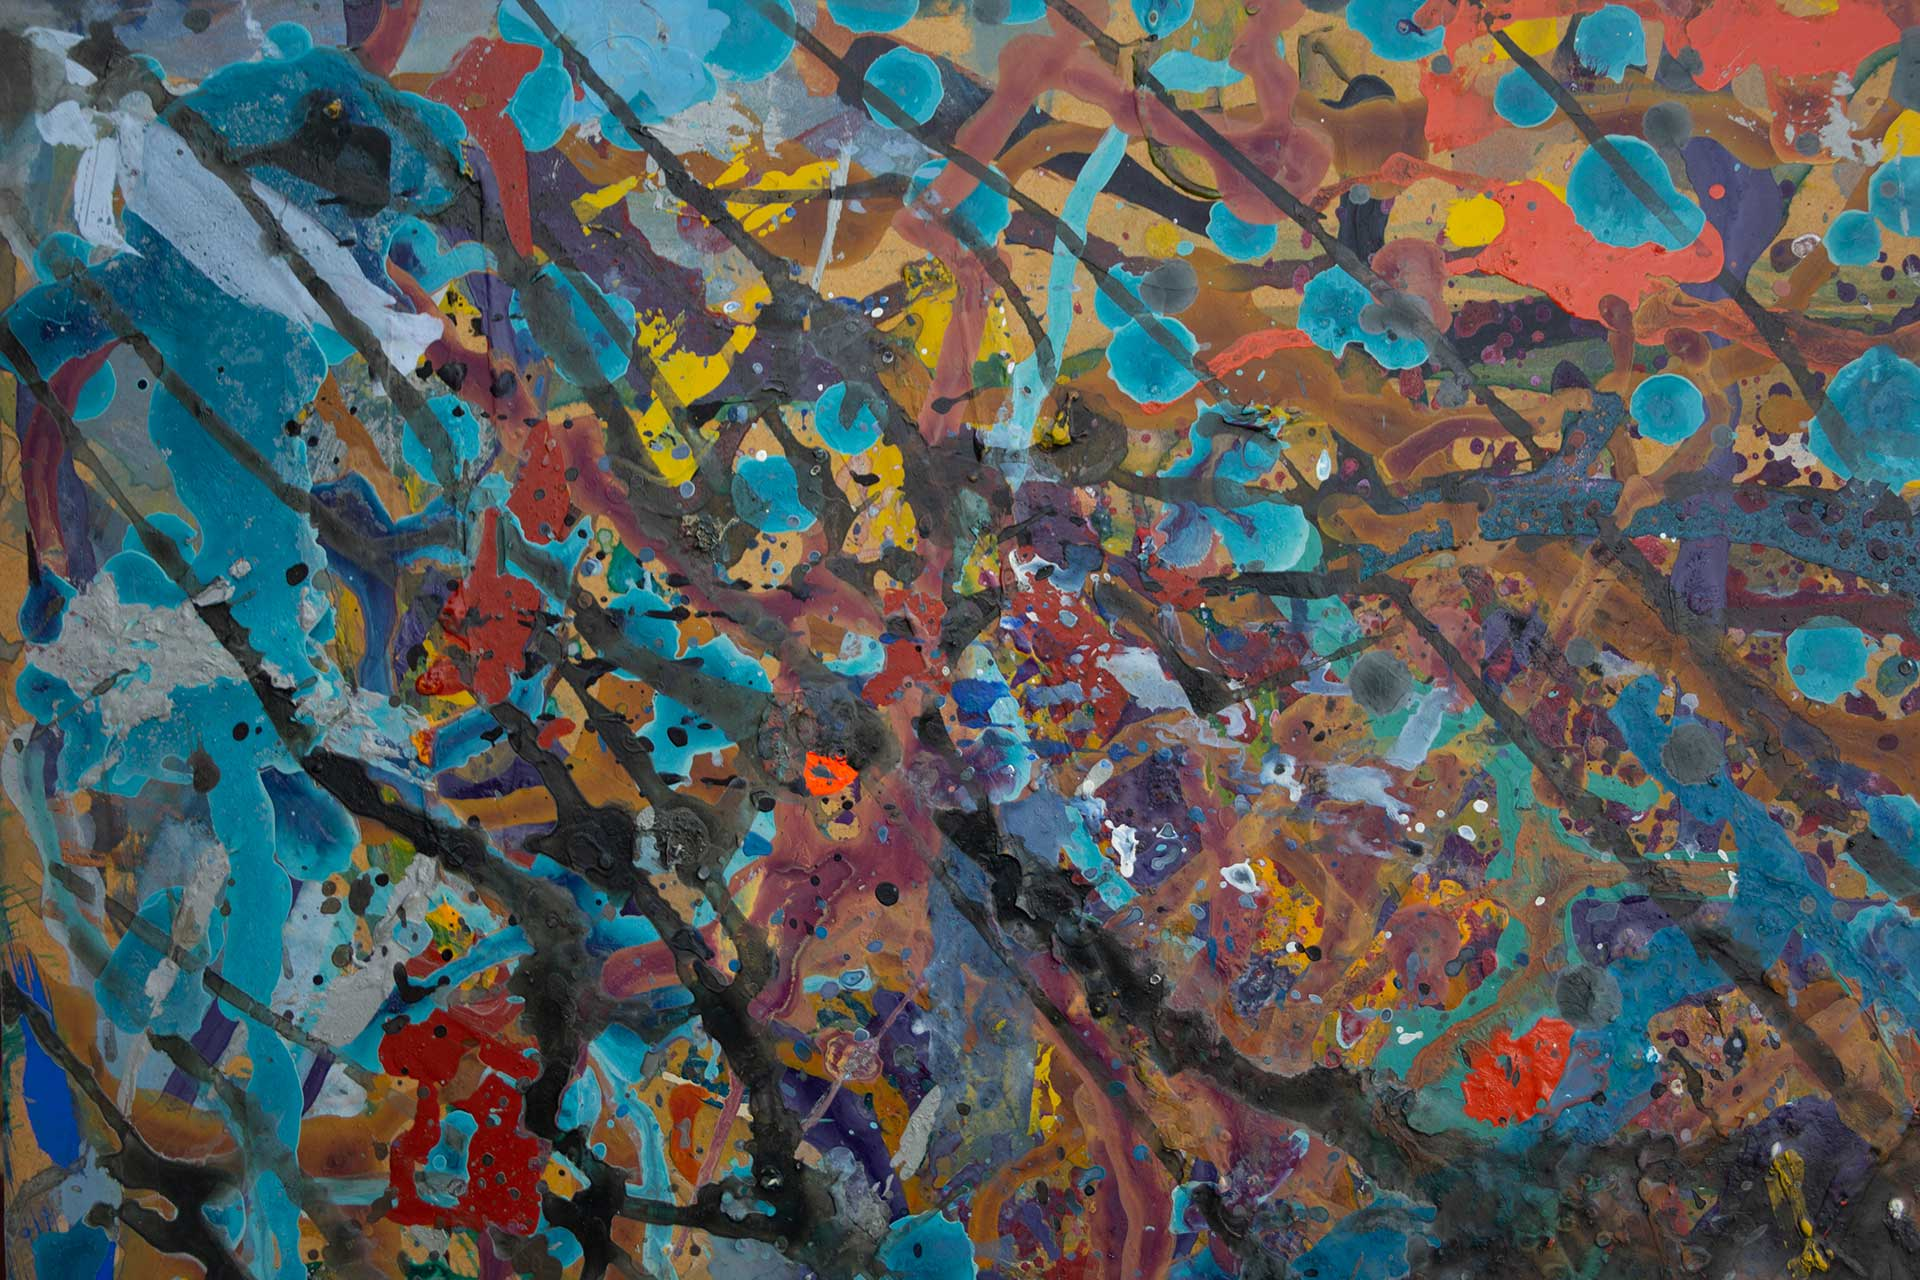 Abstract expressionism painting - Fight of the aliens #1 - Detail 1